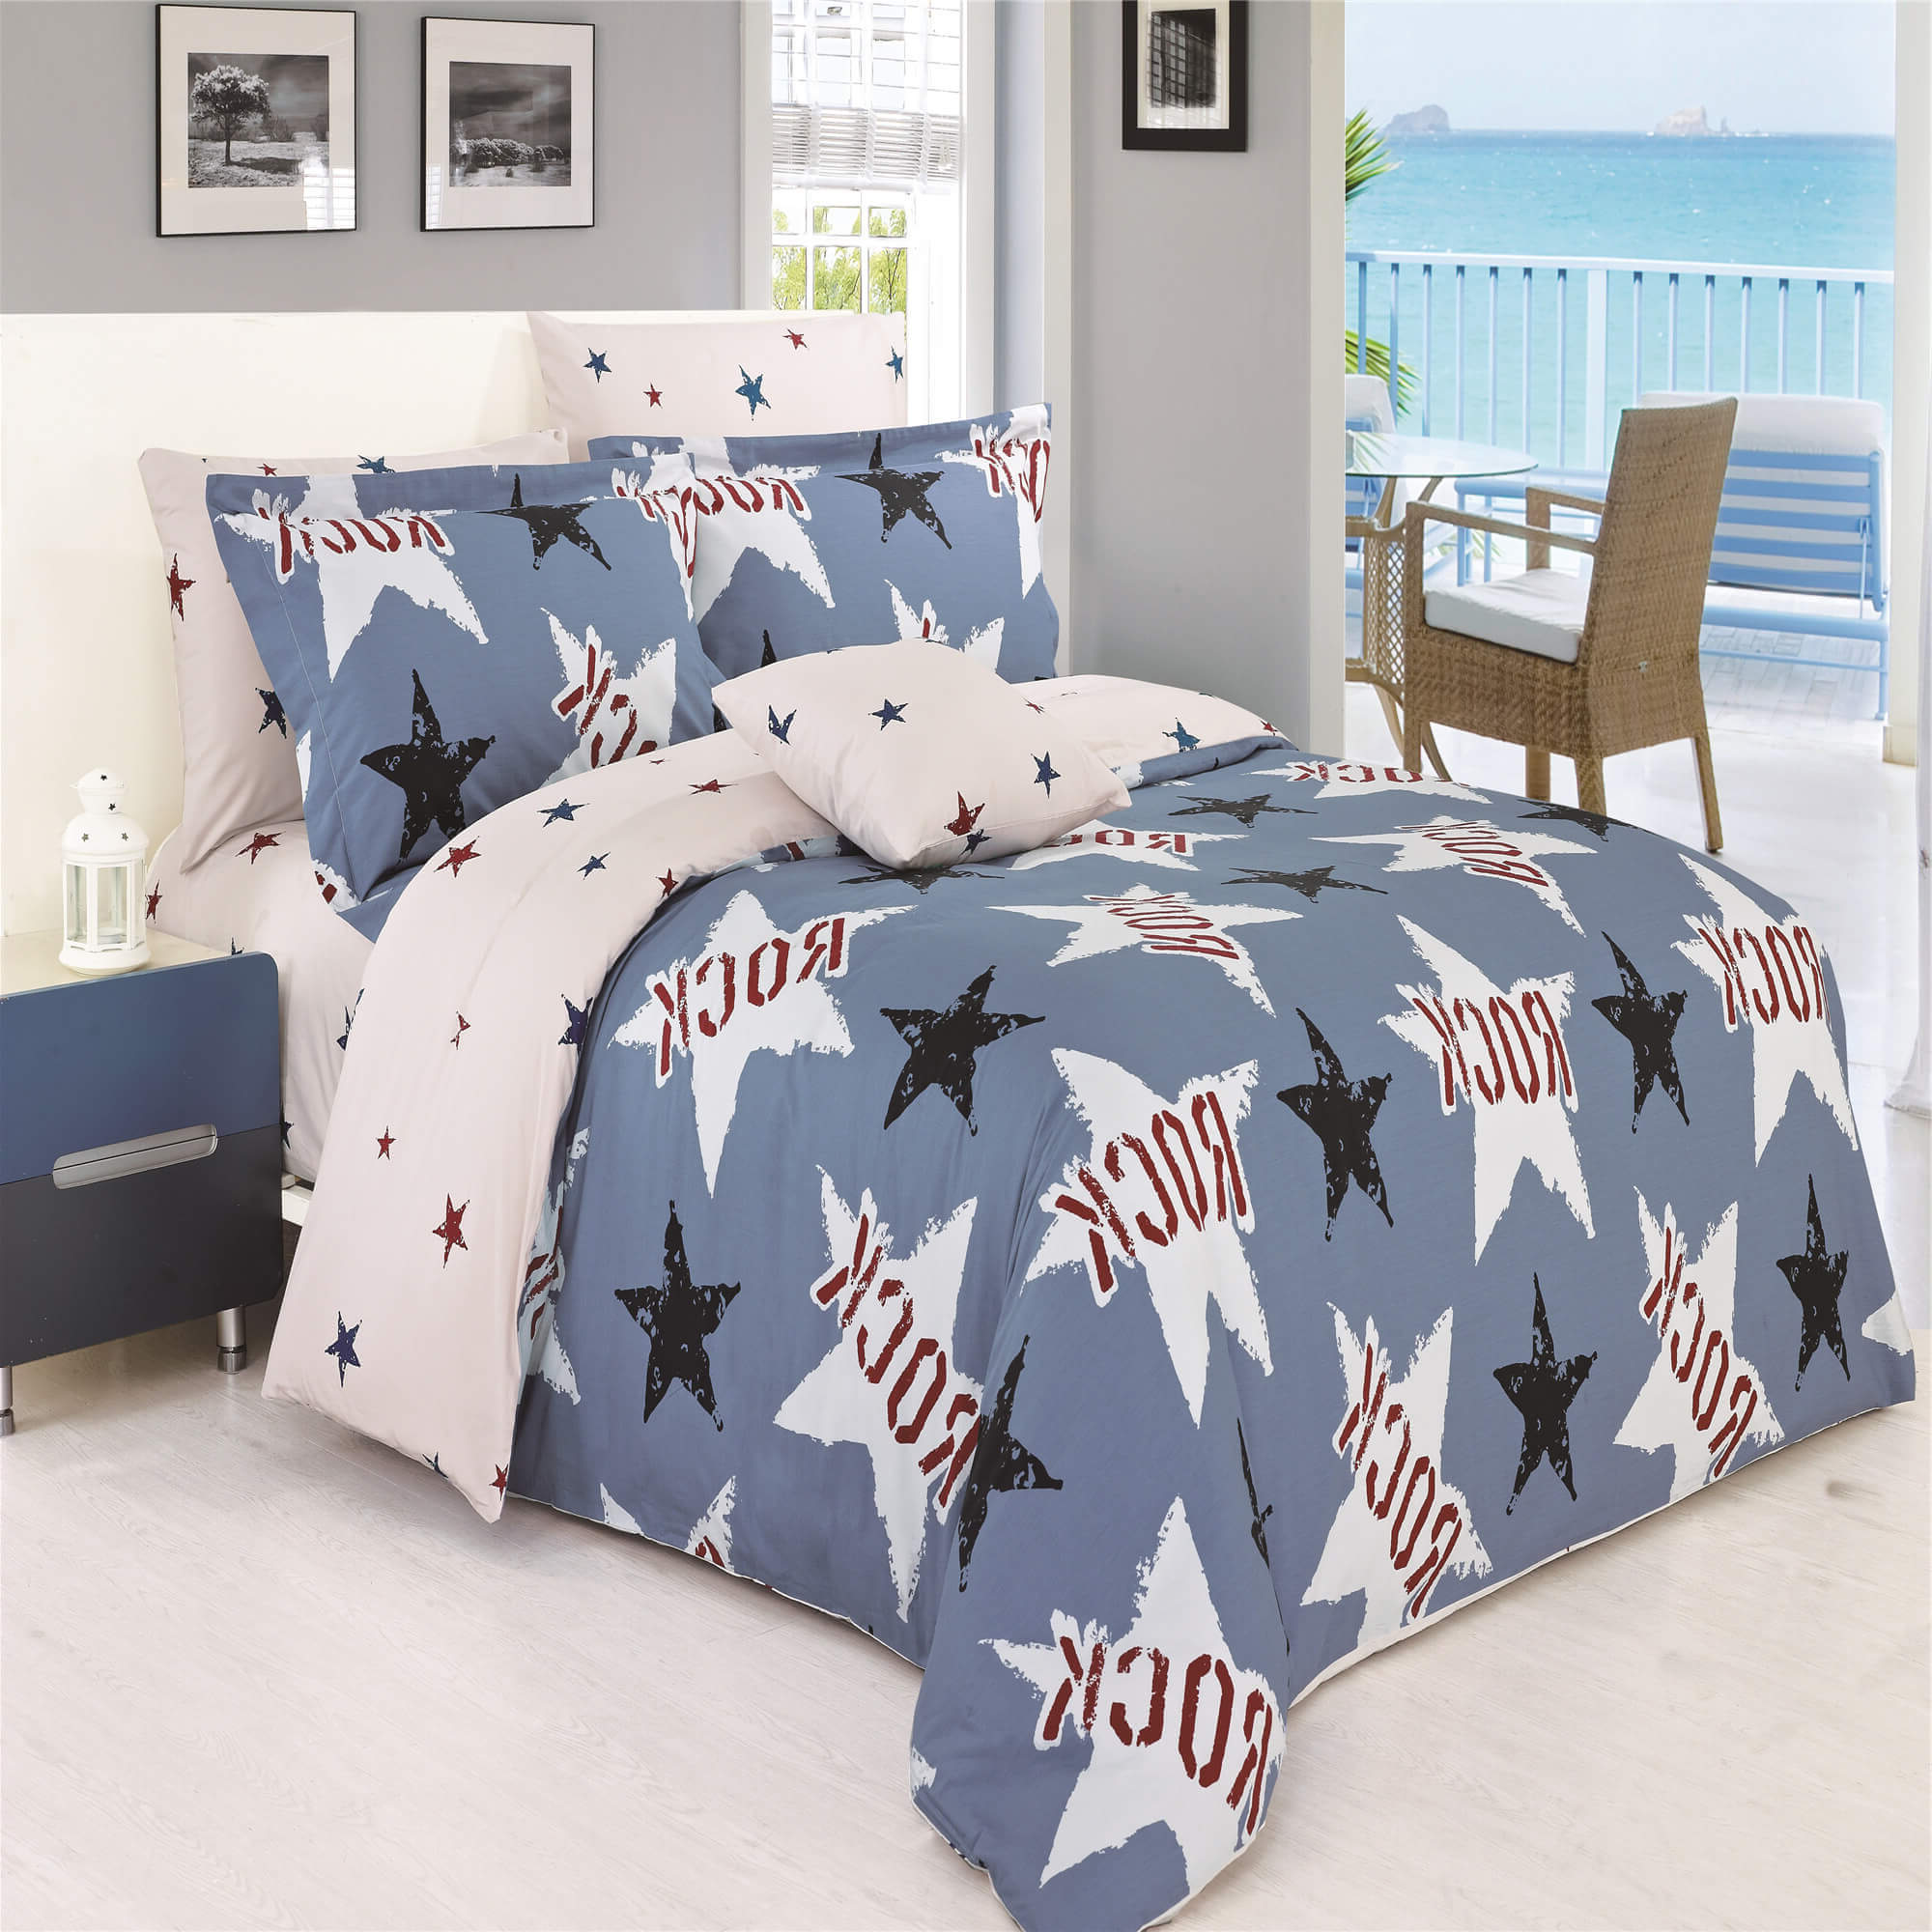 Rock Sheet Set